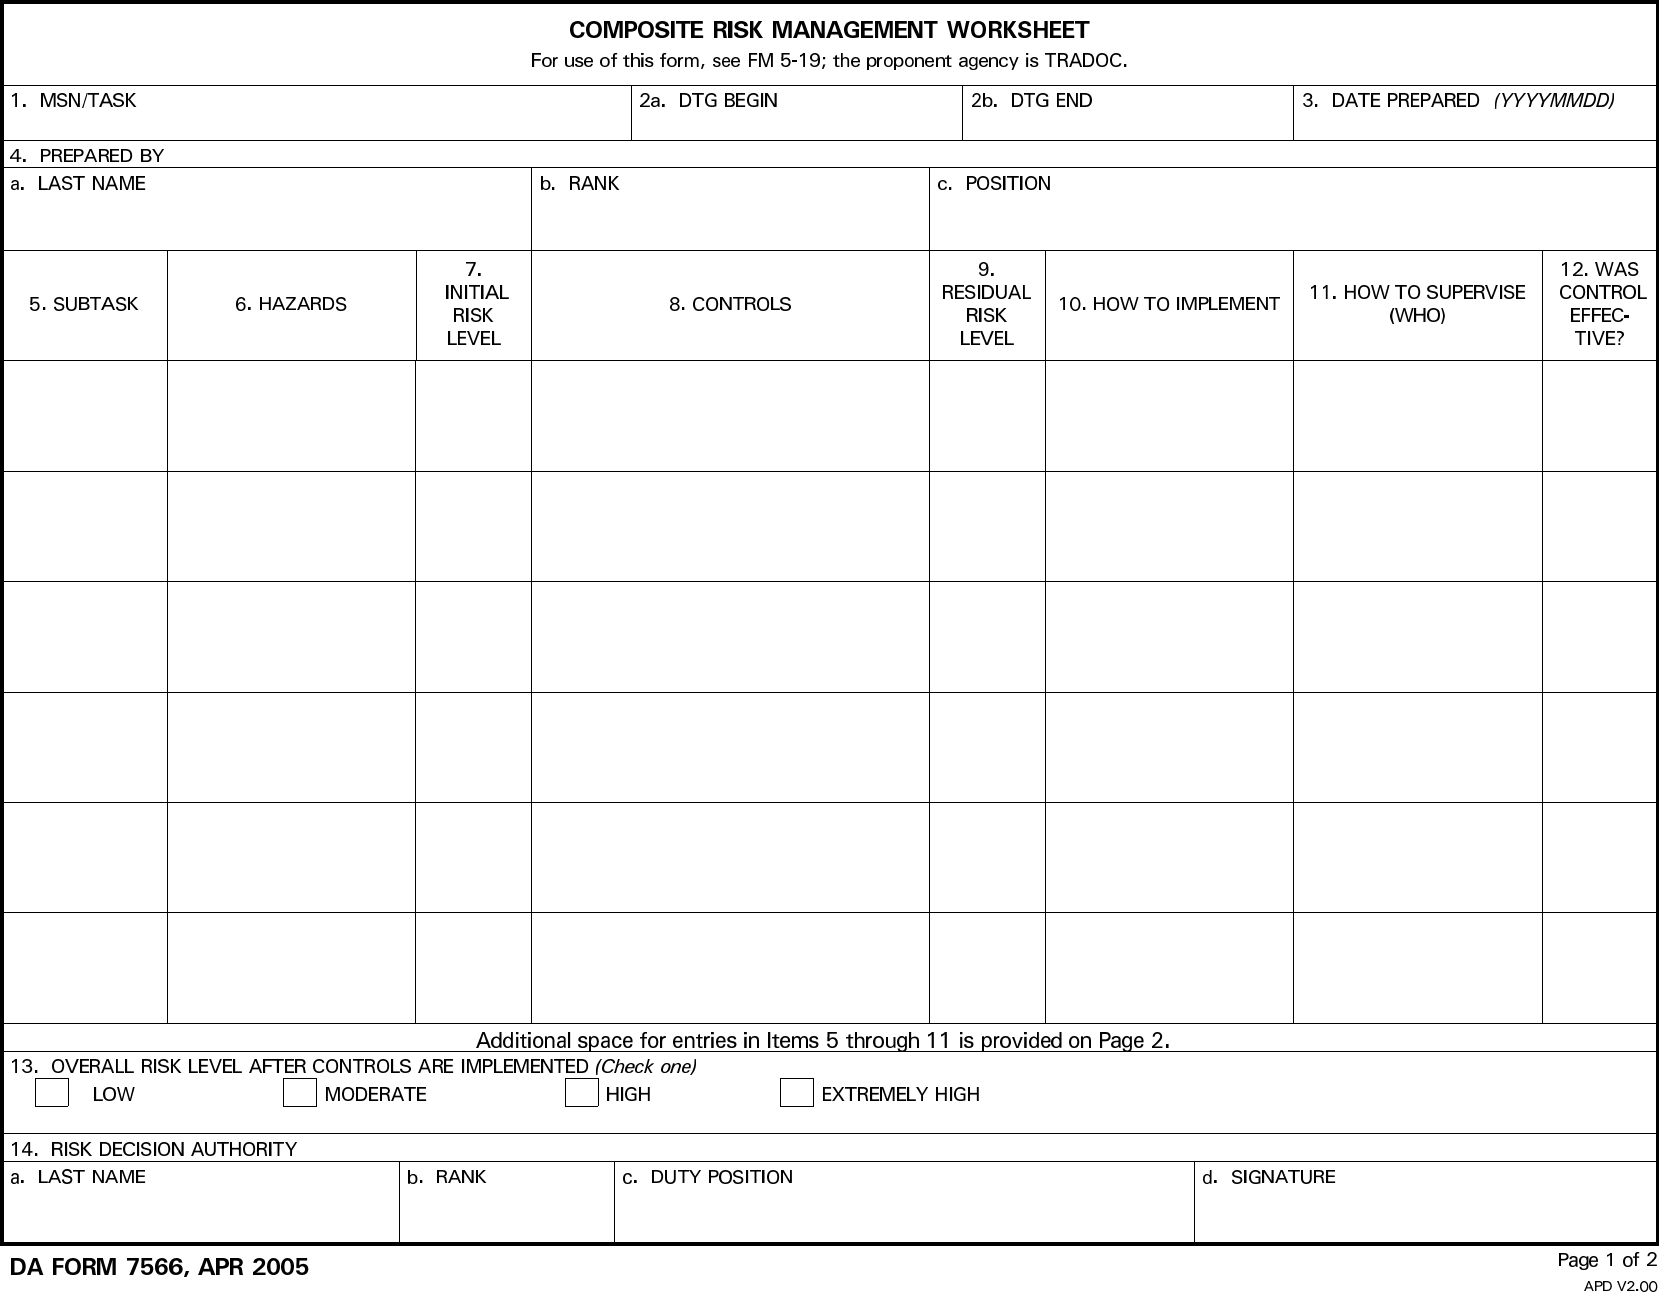 data center risk assessment template - composite risk management form template free download